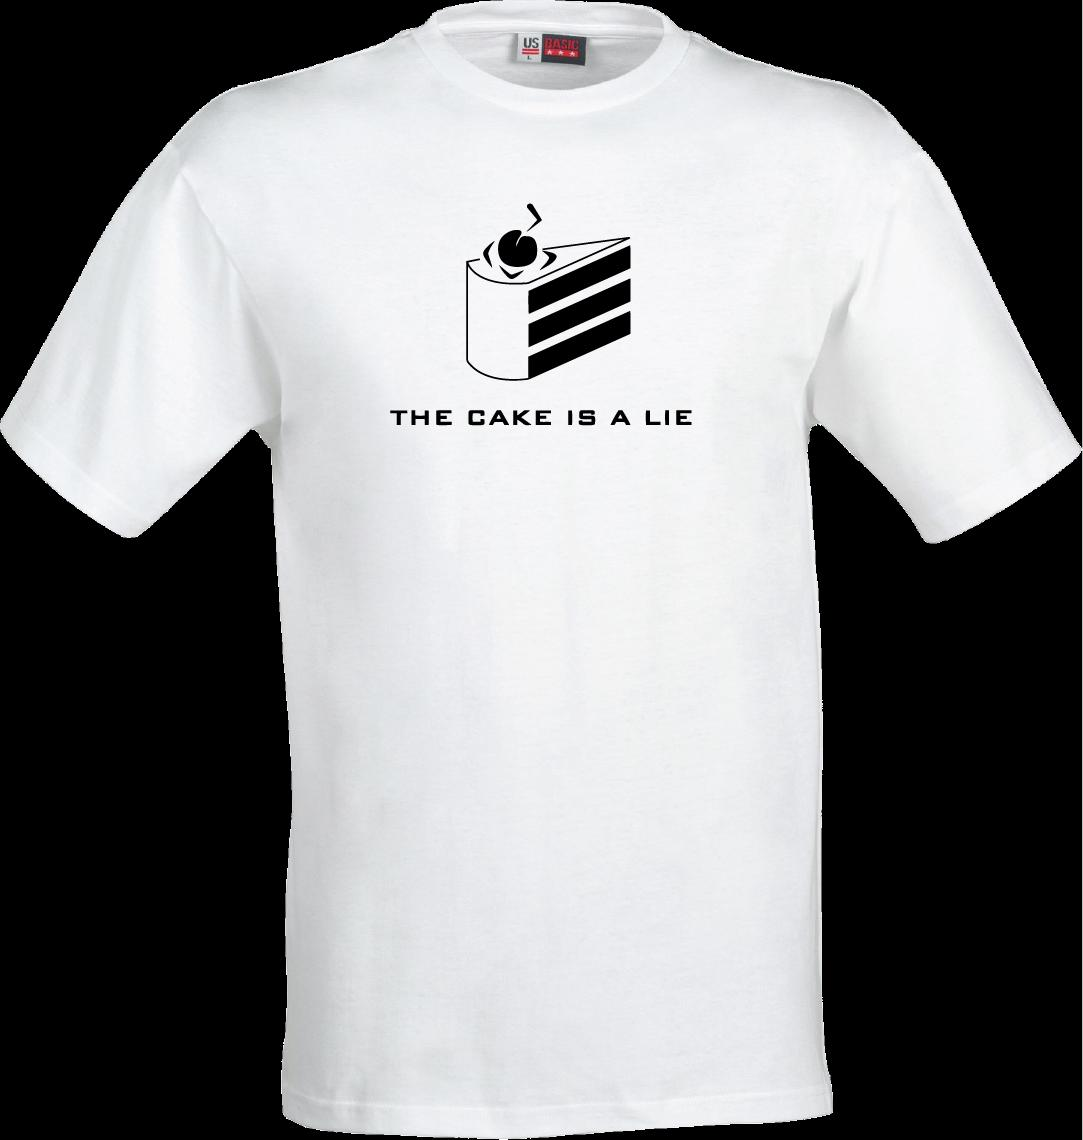 848a4ce59ef THE CAKE IS A LIE Portal Glados Slogan Shirt Game Ps3 Ps4 Xbox Pc Gift  Present Funny Unisex Casual Tee T Shirt Shirt Awesome T Shirts For Guys  From ...